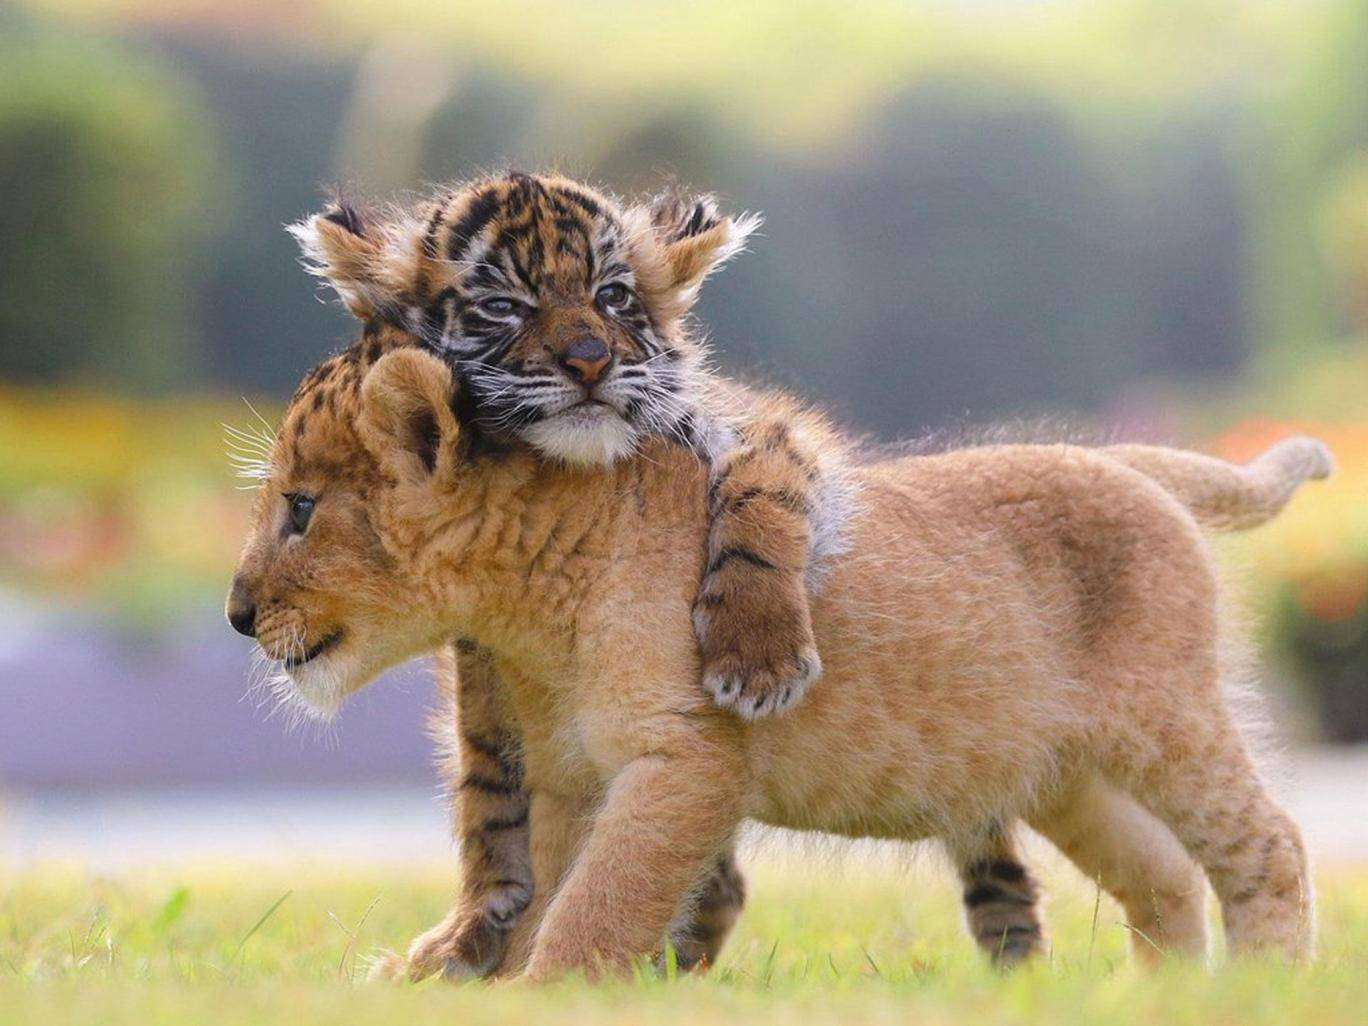 use deep learning to distinguish a lion from a tiger